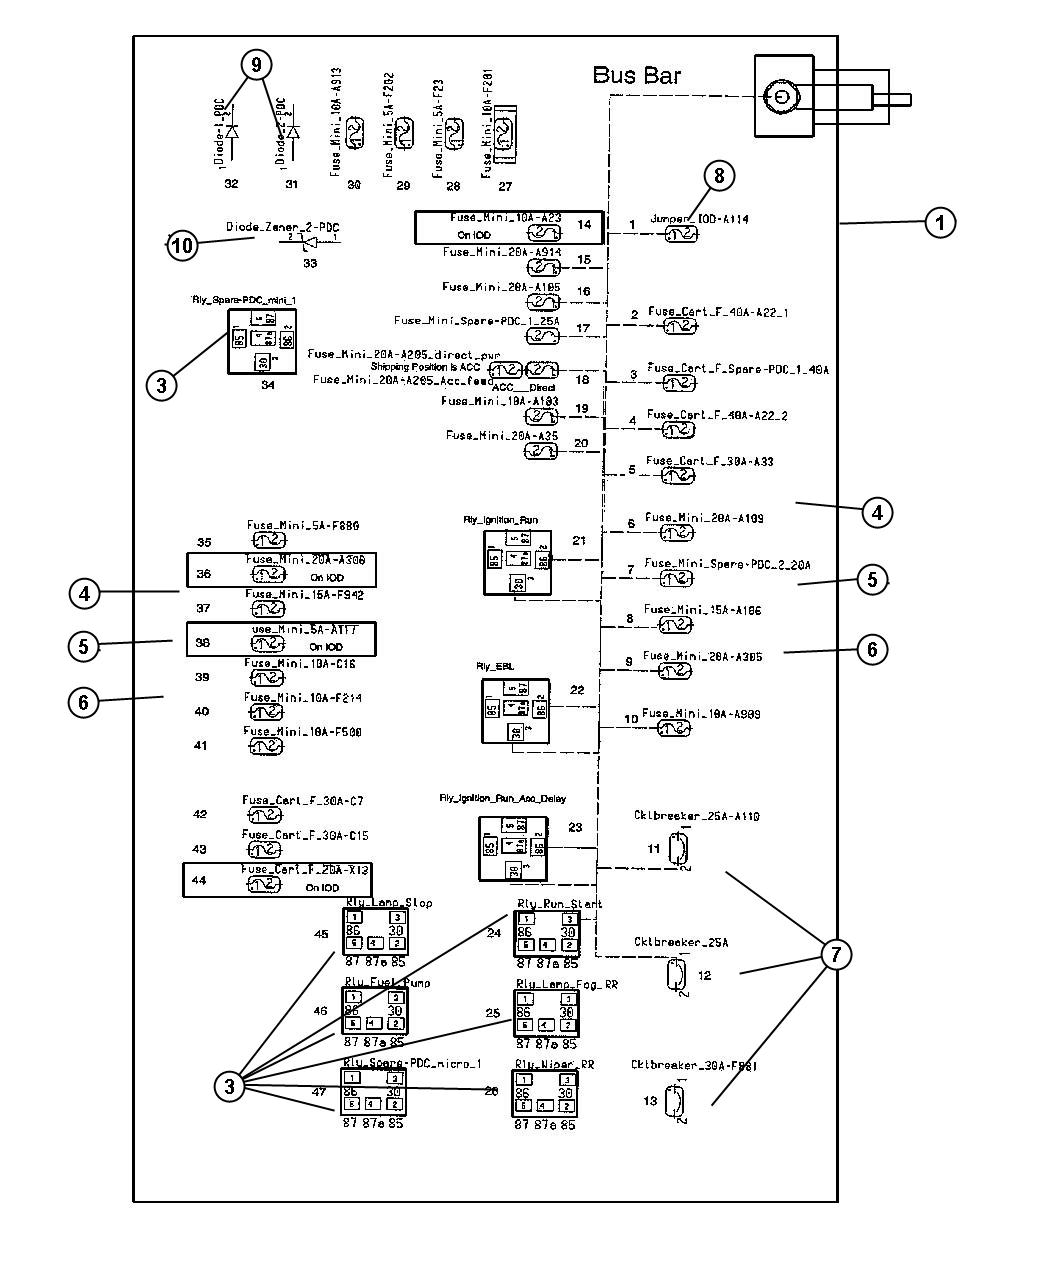 2005 Chrysler 300c Fuse Diagram Guide And Troubleshooting Of Pt Cruiser Wiring Box Get Free Image 300